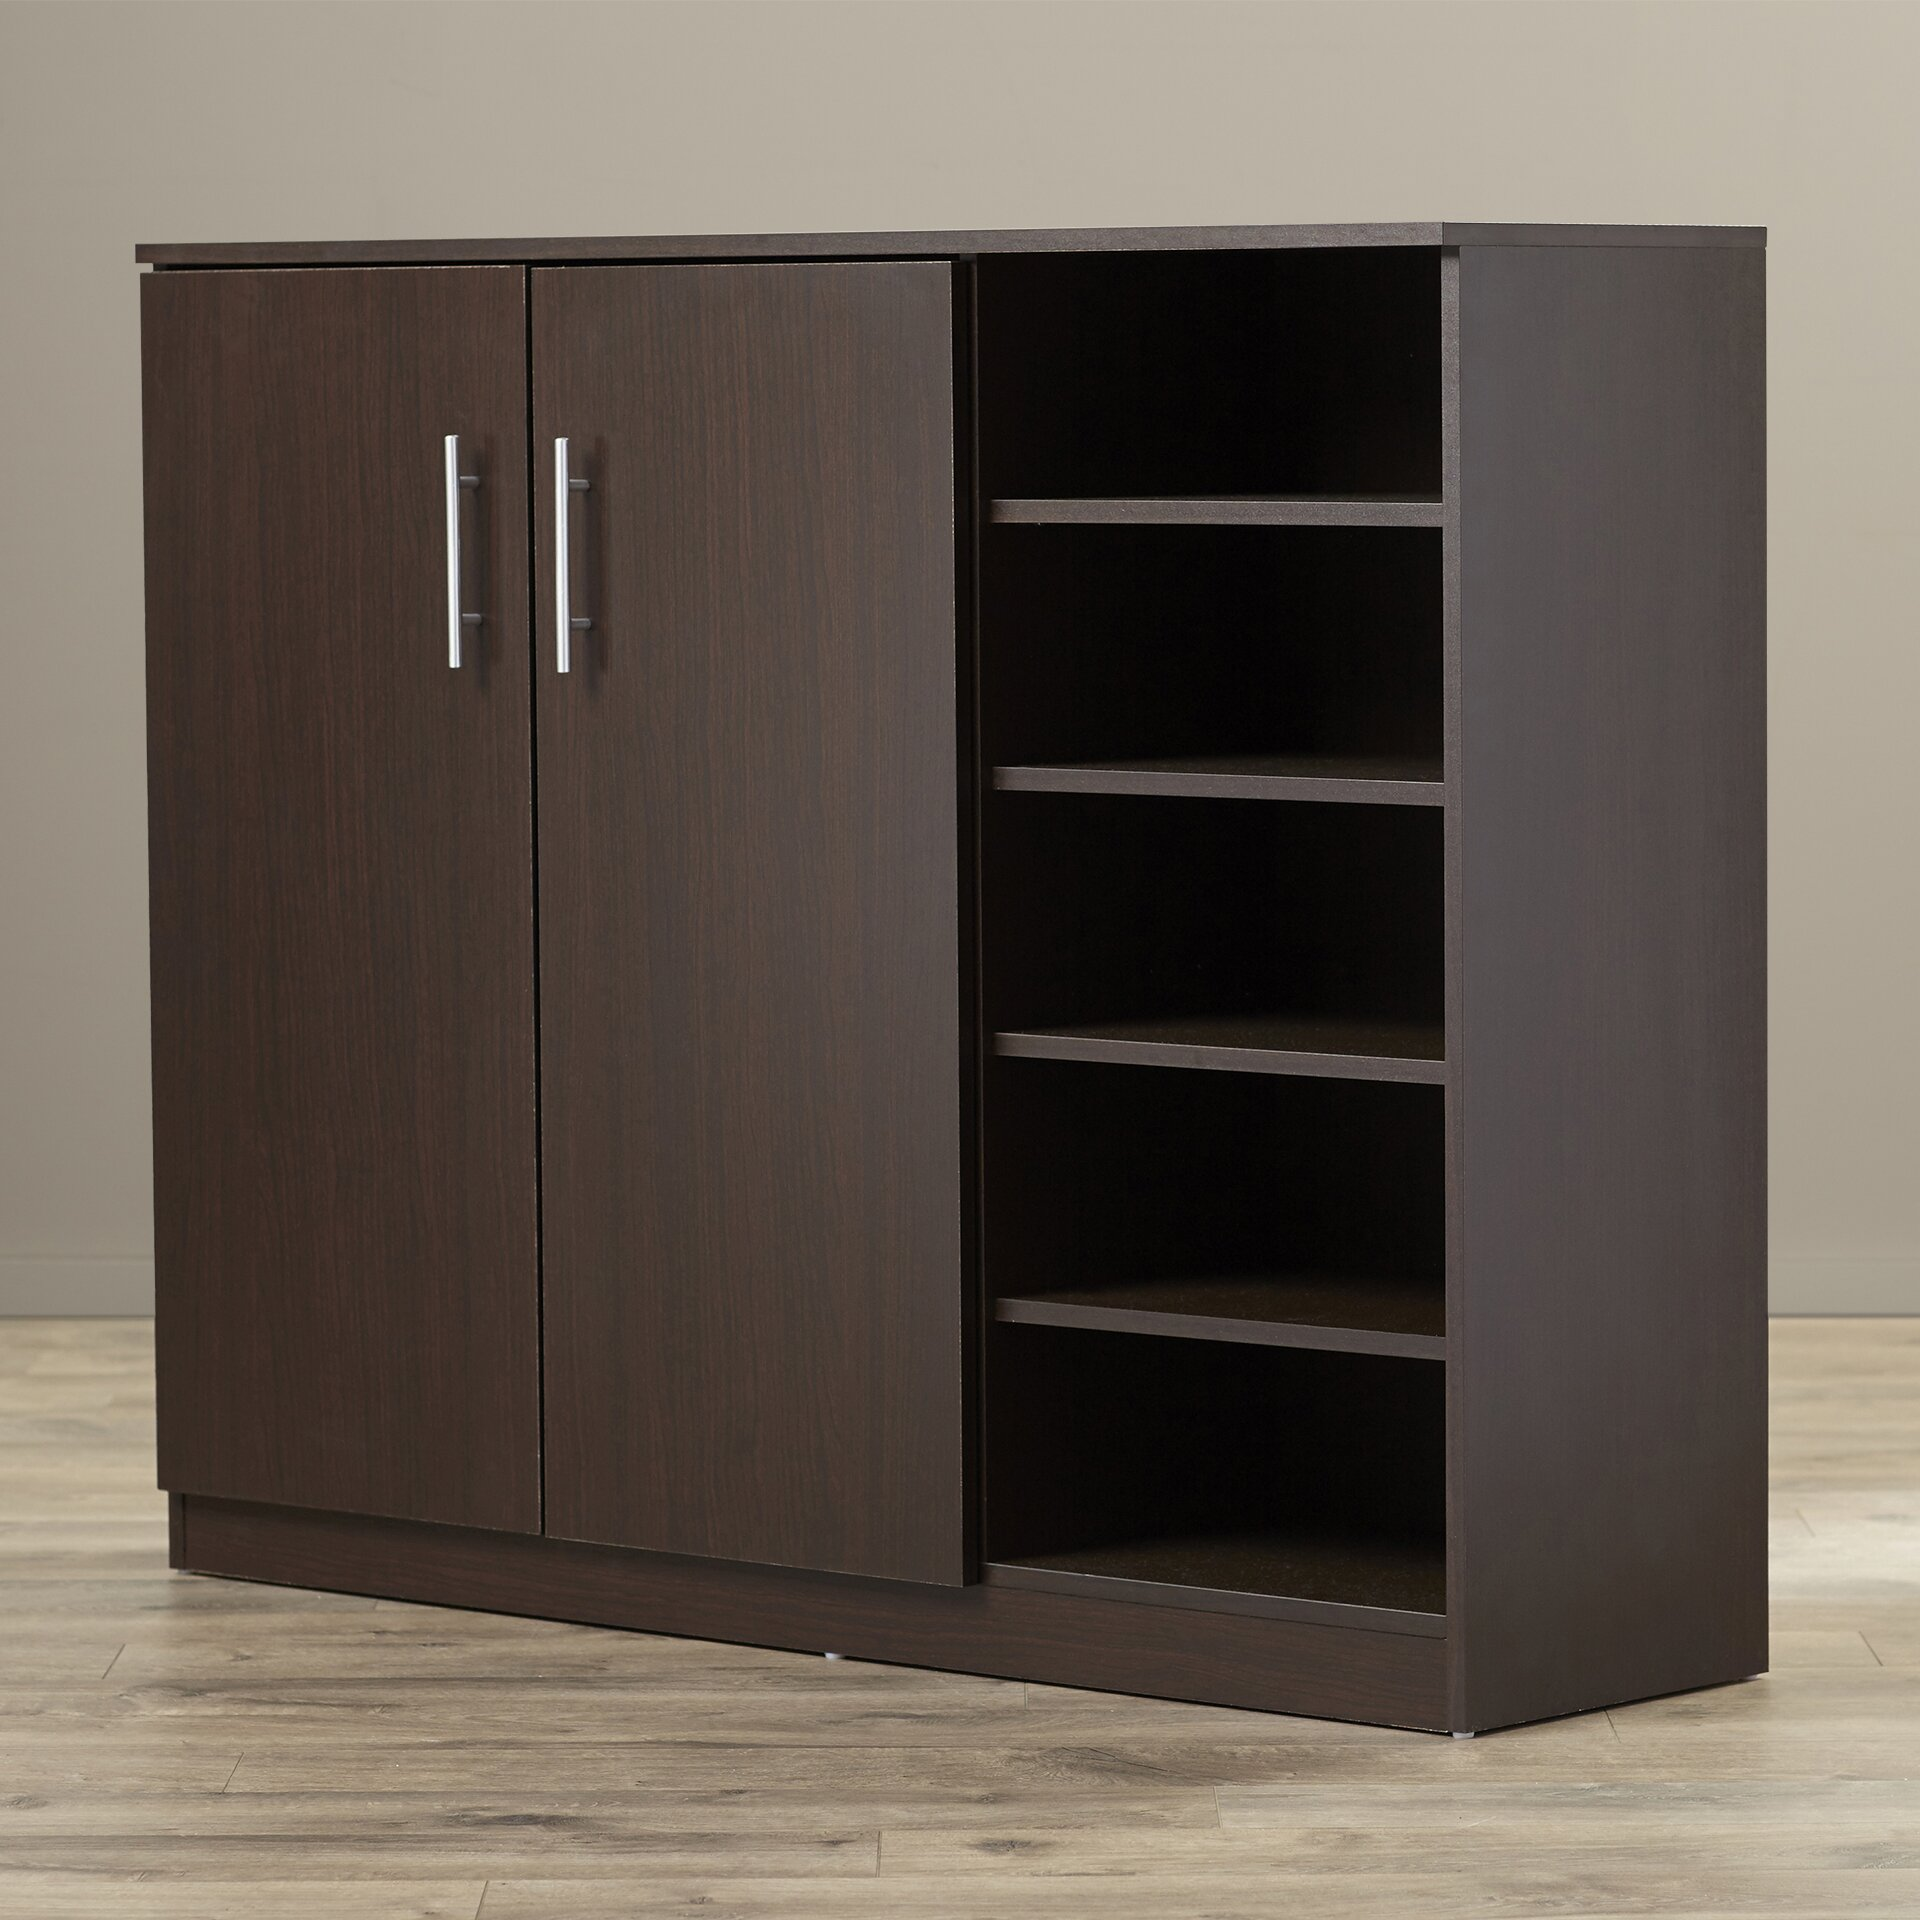 Wade logan zachery shoe cabinet reviews wayfair for Cupboard cabinet designs